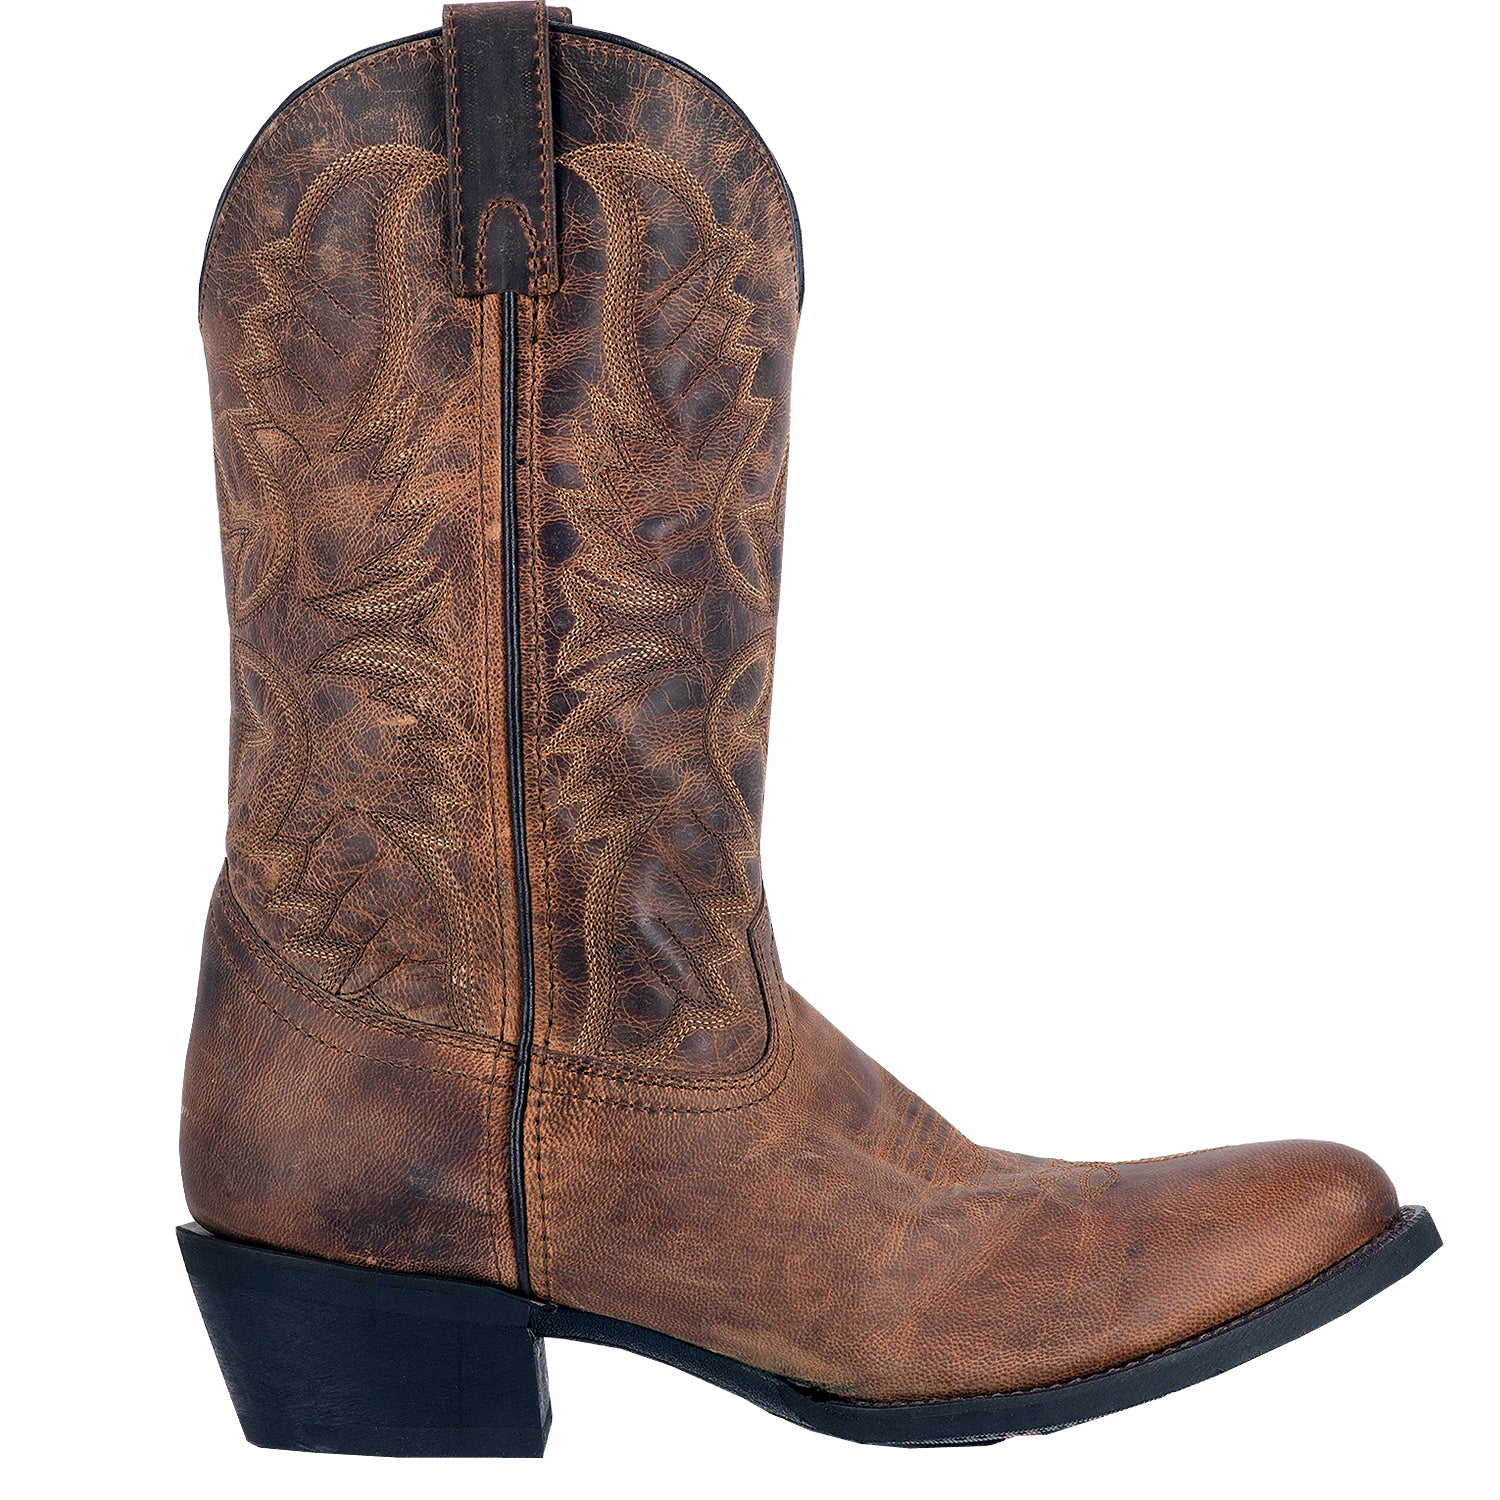 BIRCHWOOD LEATHER BOOT 4410063585322